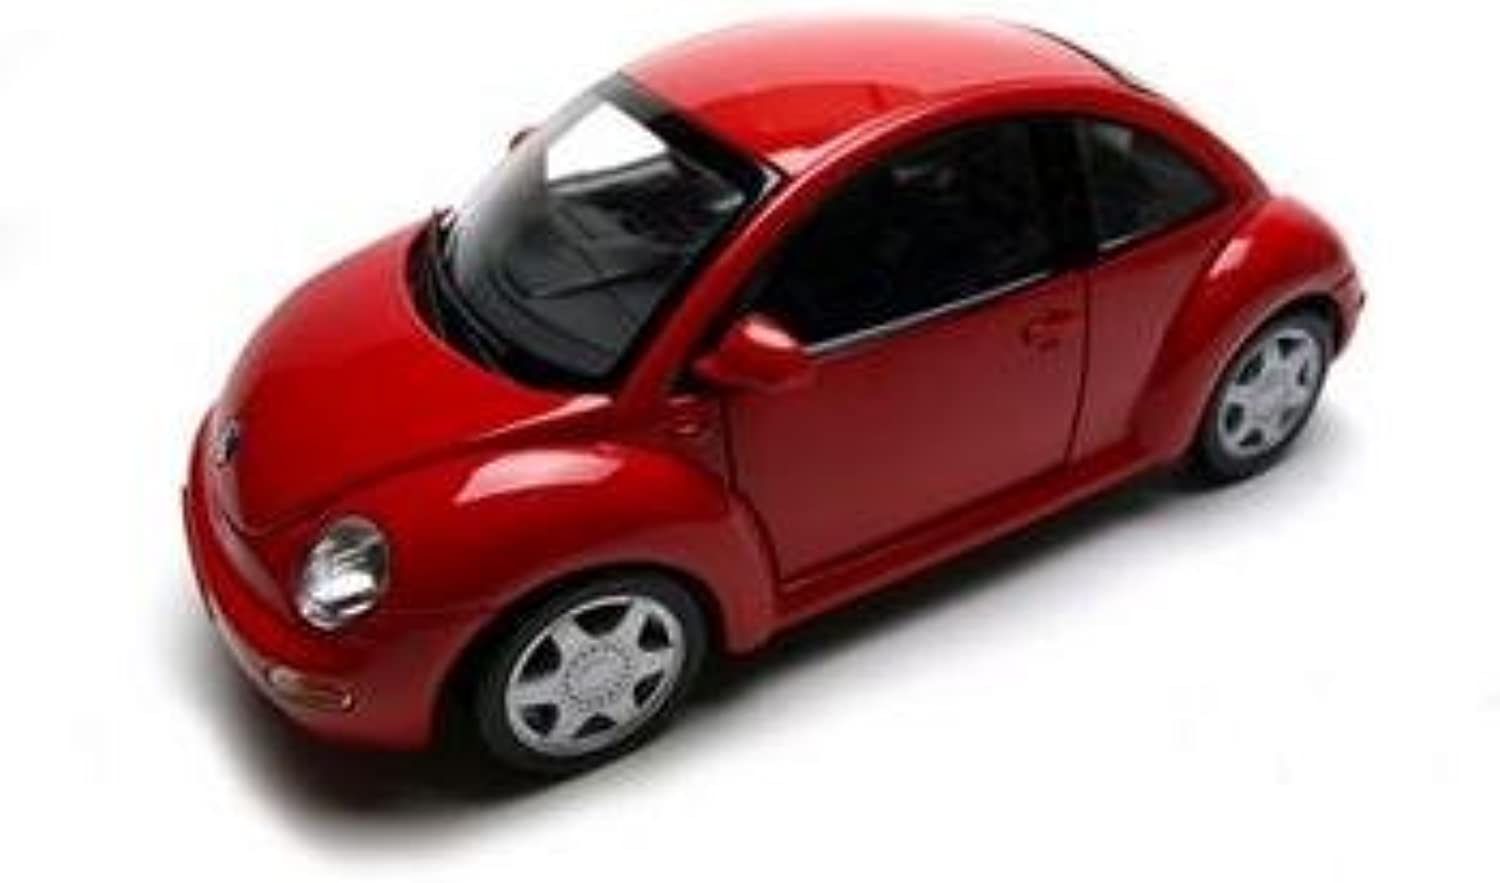 Maisto Die Cast 1 18 Scale Metallic rot Volkswagen New Beetle by Maisto Tech